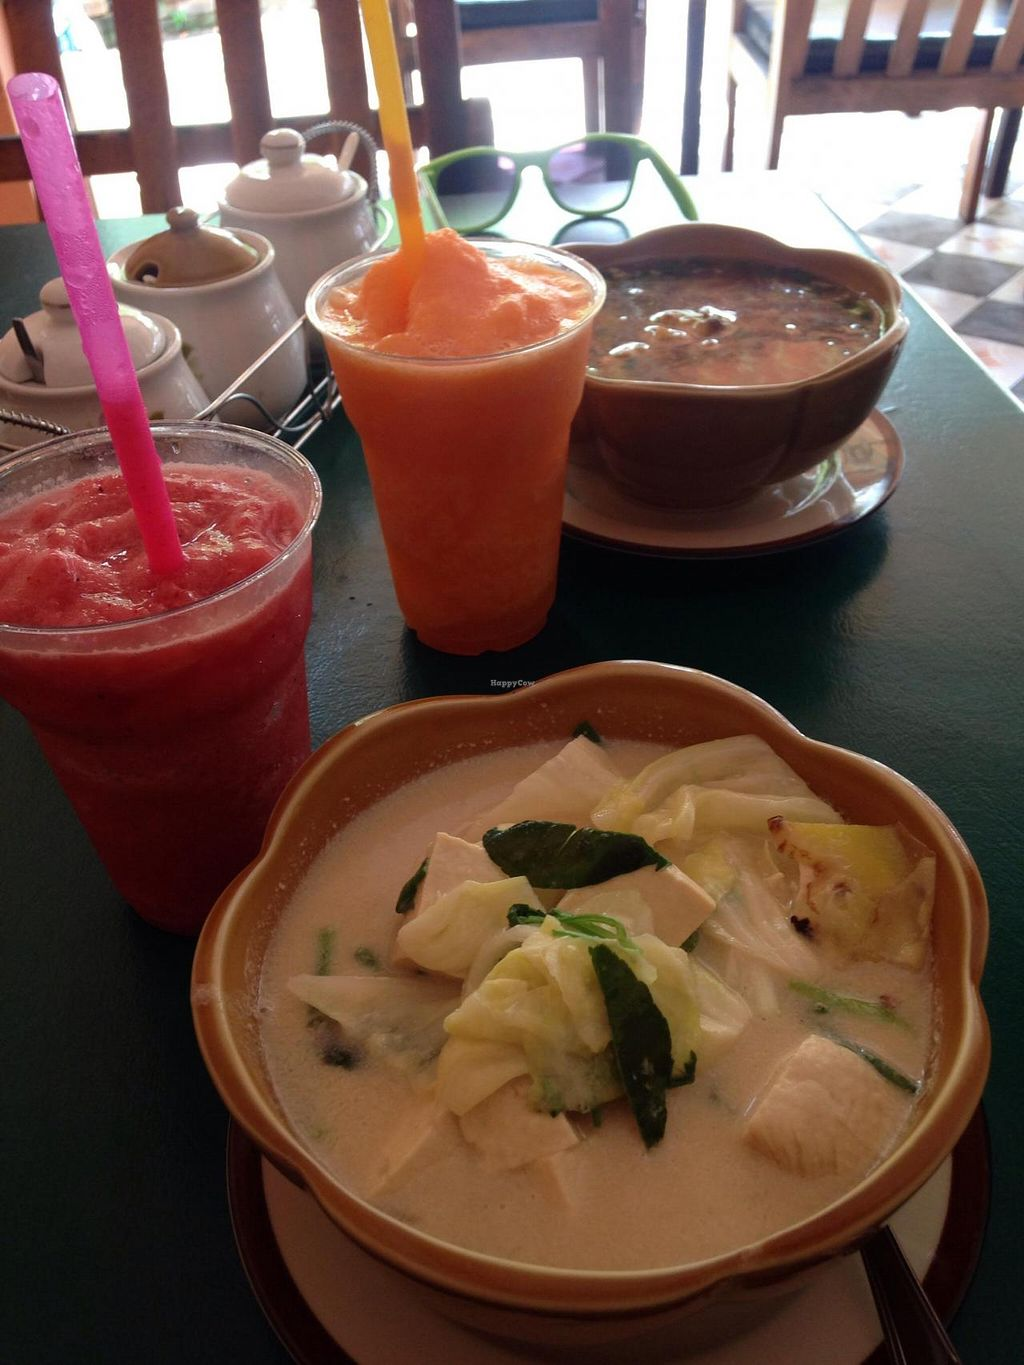 """Photo of Apple  by <a href=""""/members/profile/Amberisavegan"""">Amberisavegan</a> <br/>Tom Kha with Tofu and #11 smoothie  <br/> April 22, 2015  - <a href='/contact/abuse/image/52389/99894'>Report</a>"""